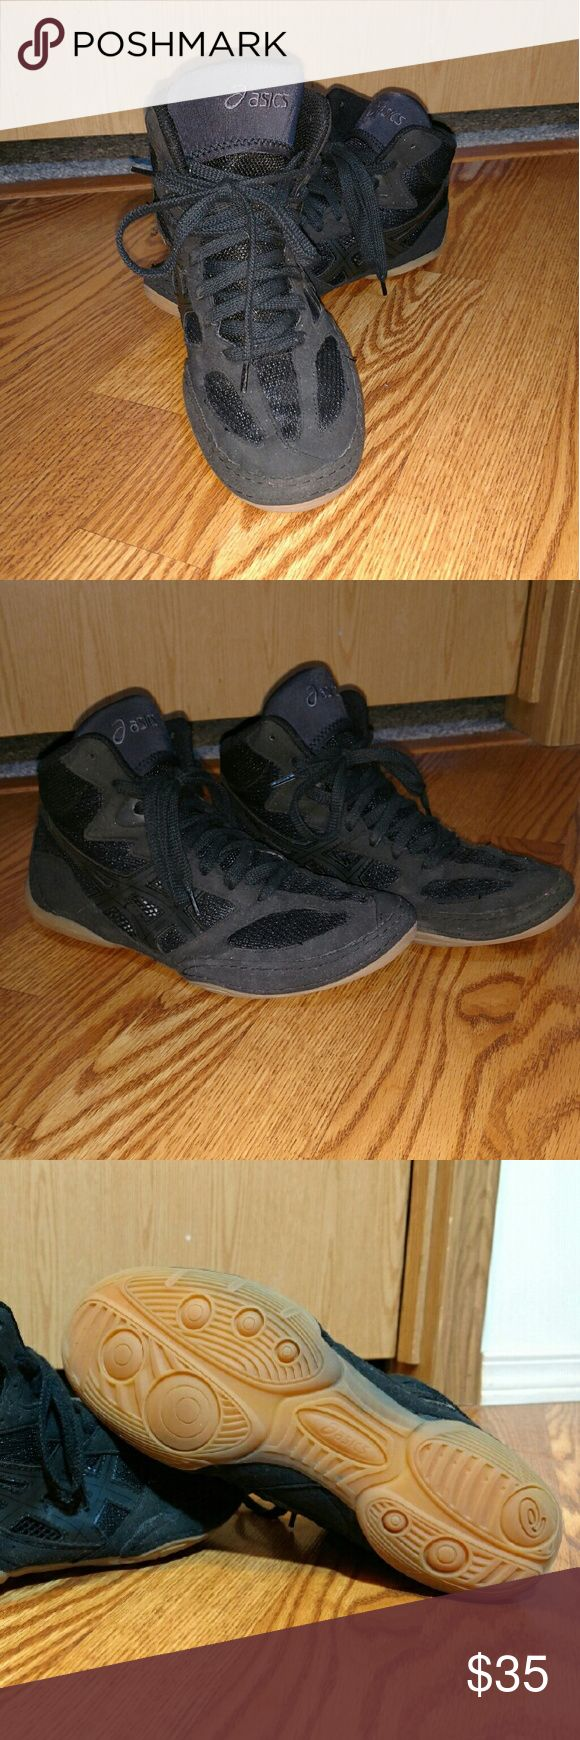 Asics Women's Wrestling Shoes Asics Women's Wrestling Shoes Size 8. Brand new. Haven't been worn. Asics Shoes Athletic Shoes